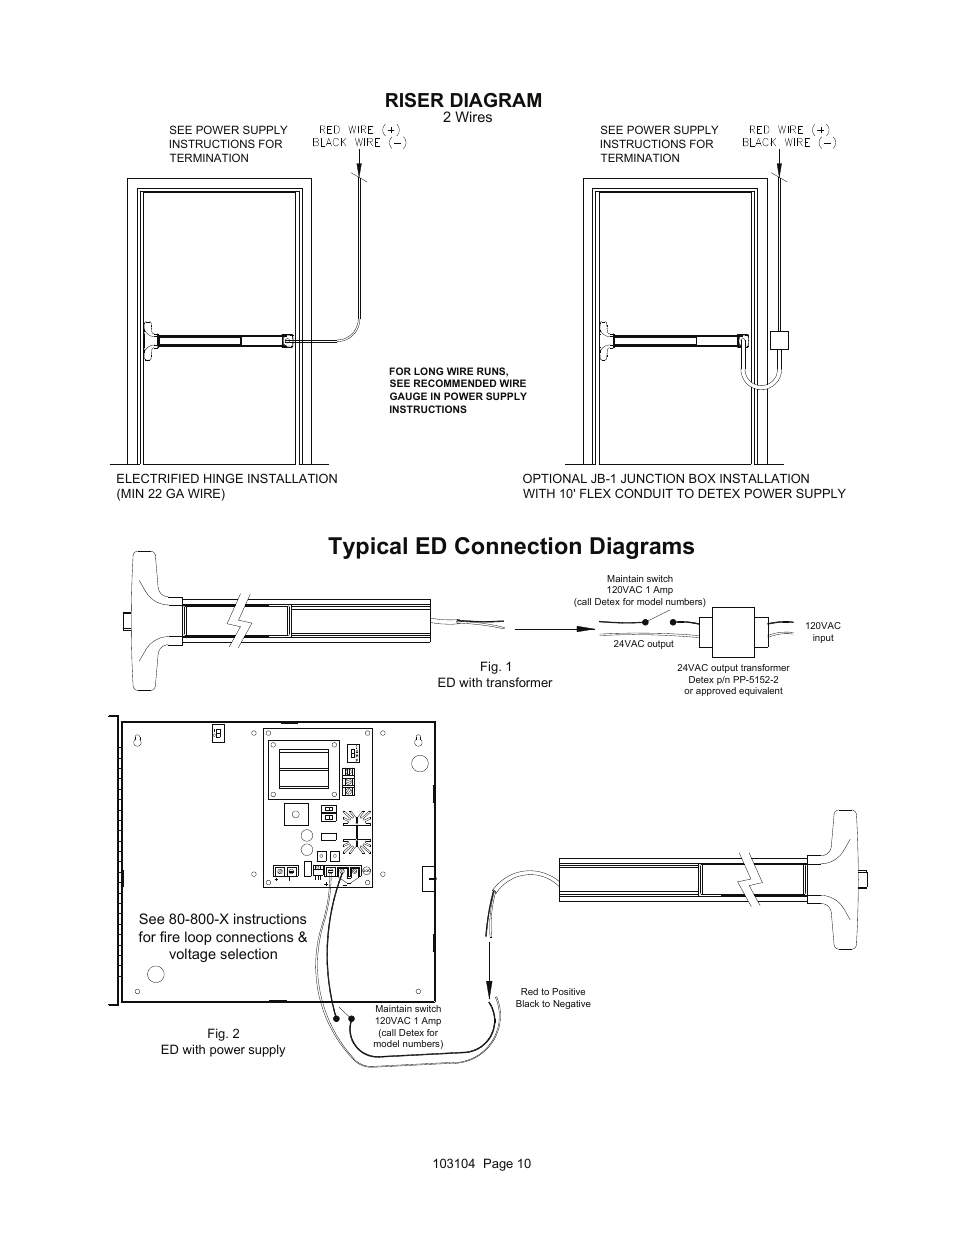 [DIAGRAM_1CA]  Typical ed connection diagrams, Riser diagram | Detex V40 ER User Manual |  Page 10 / 13 | Detex Wiring Diagrams |  | Manuals Directory